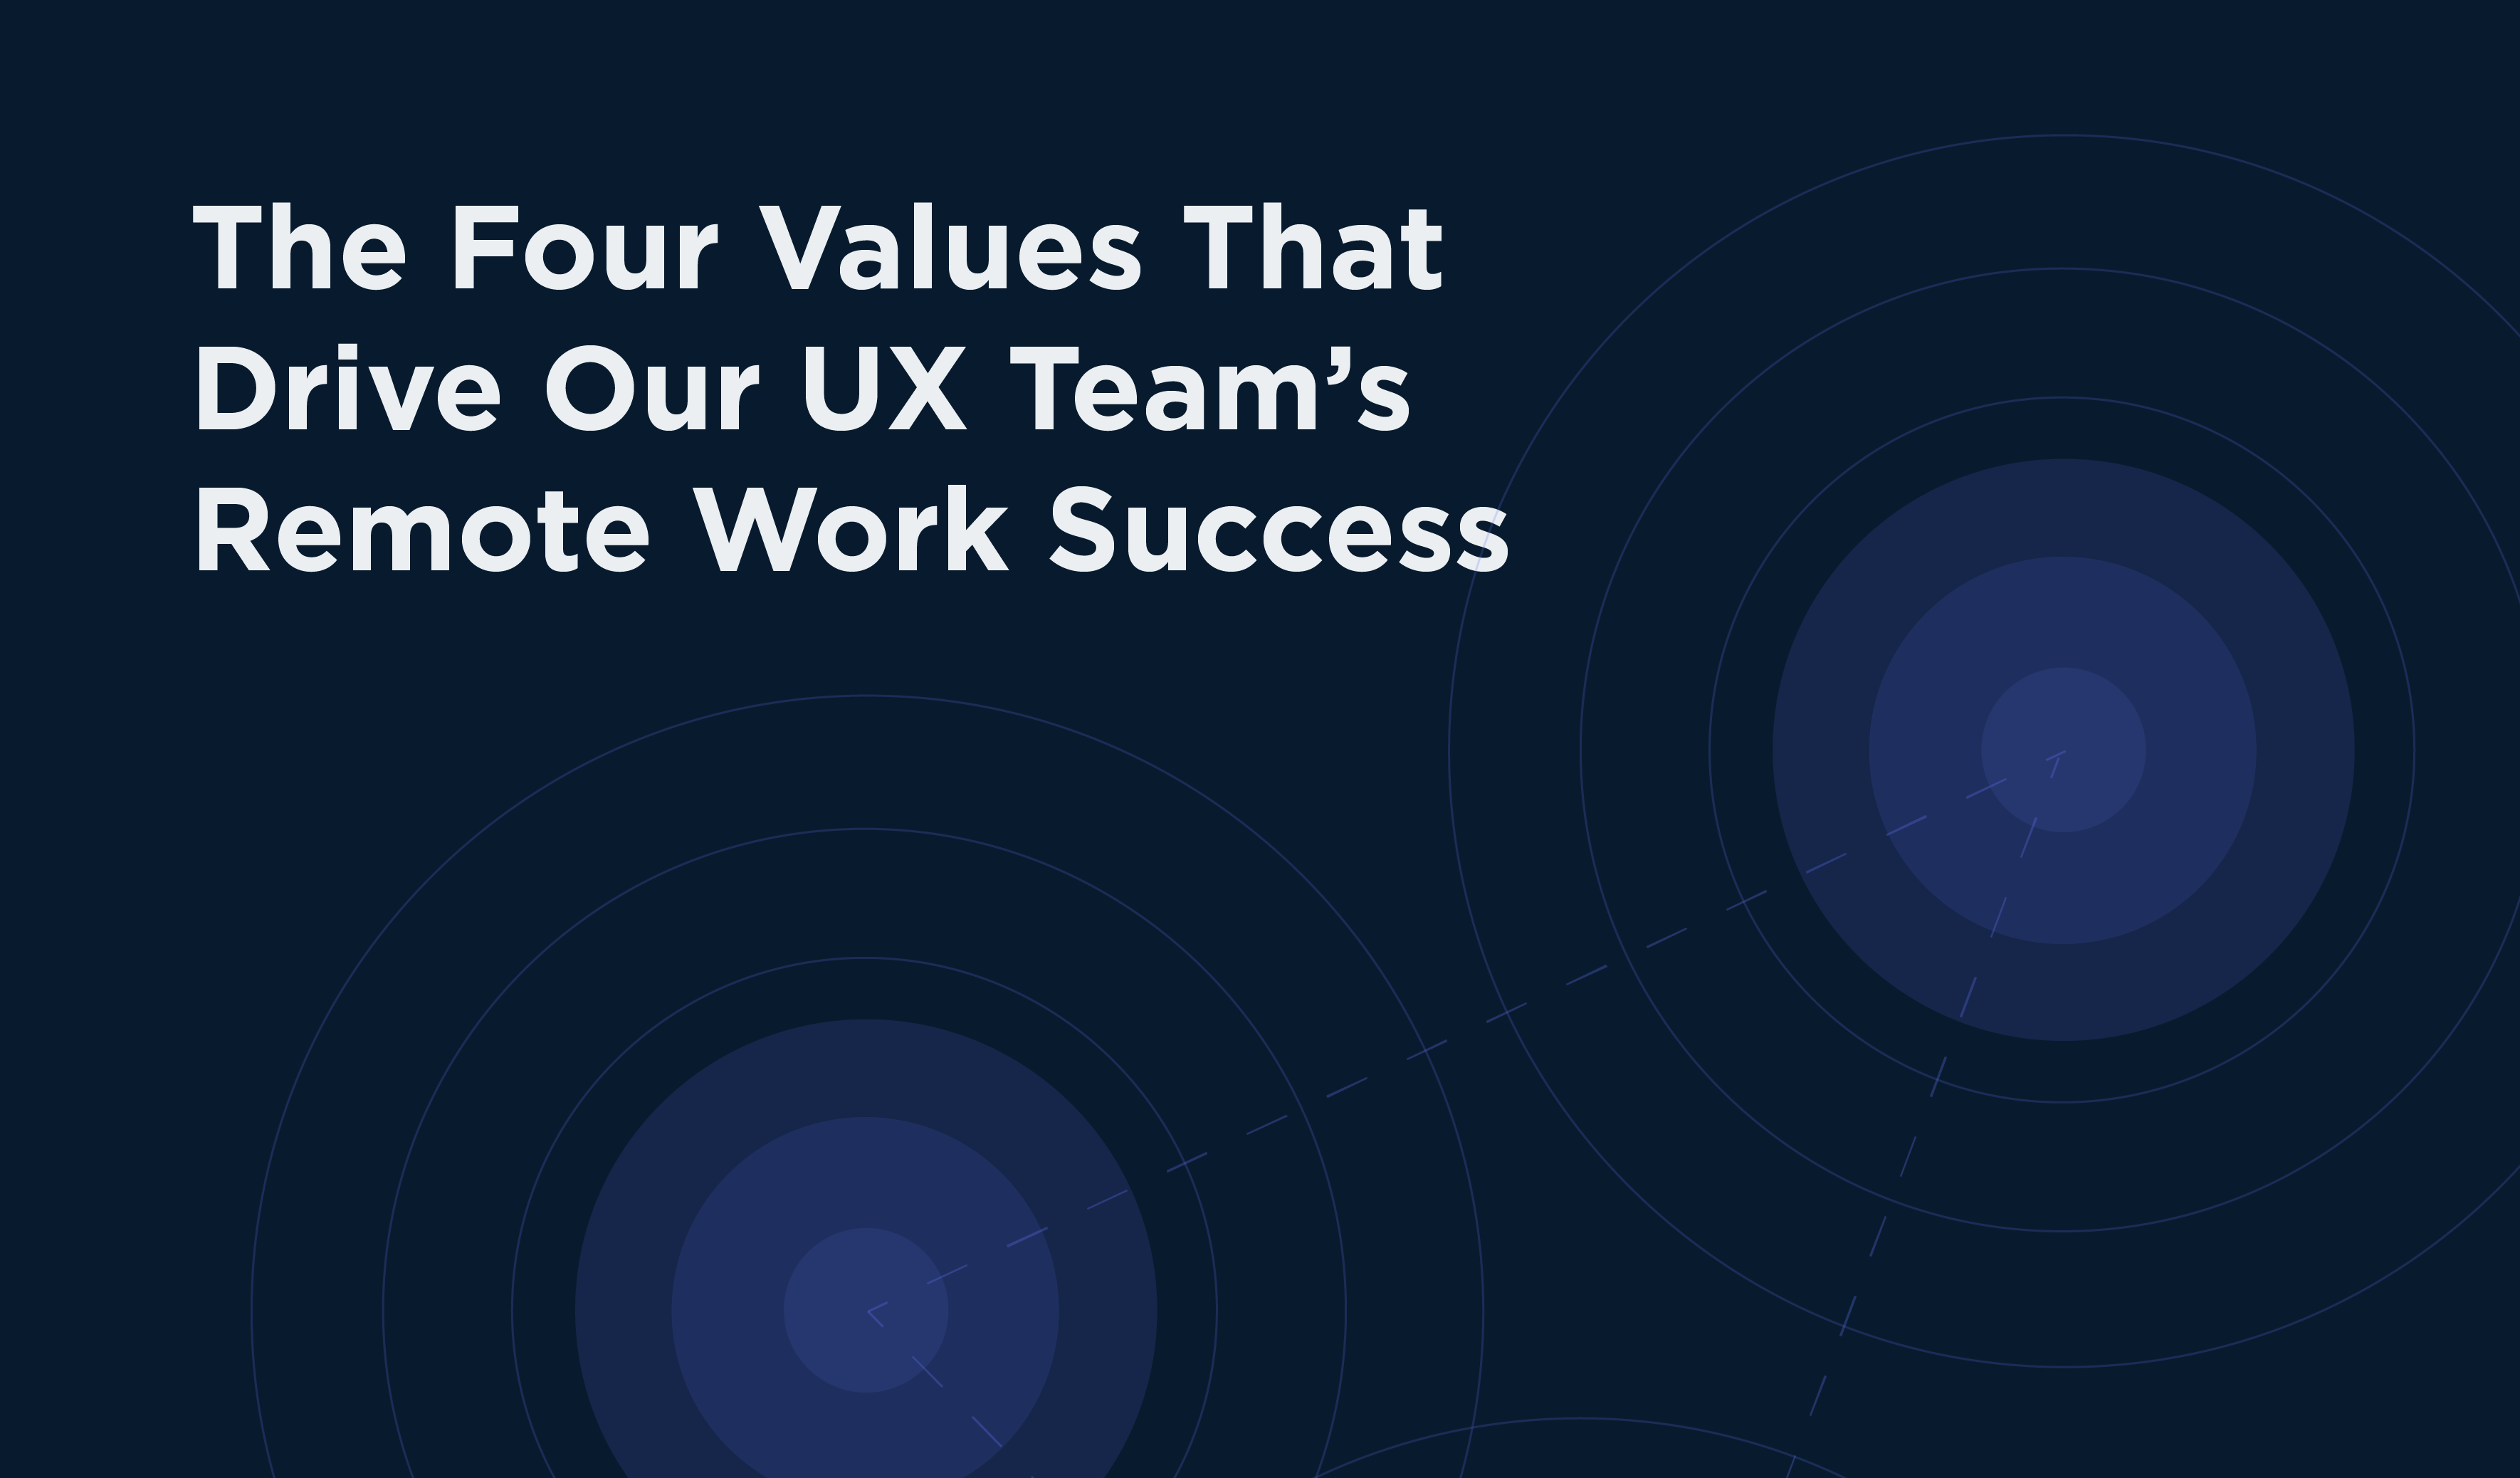 ux-team-success